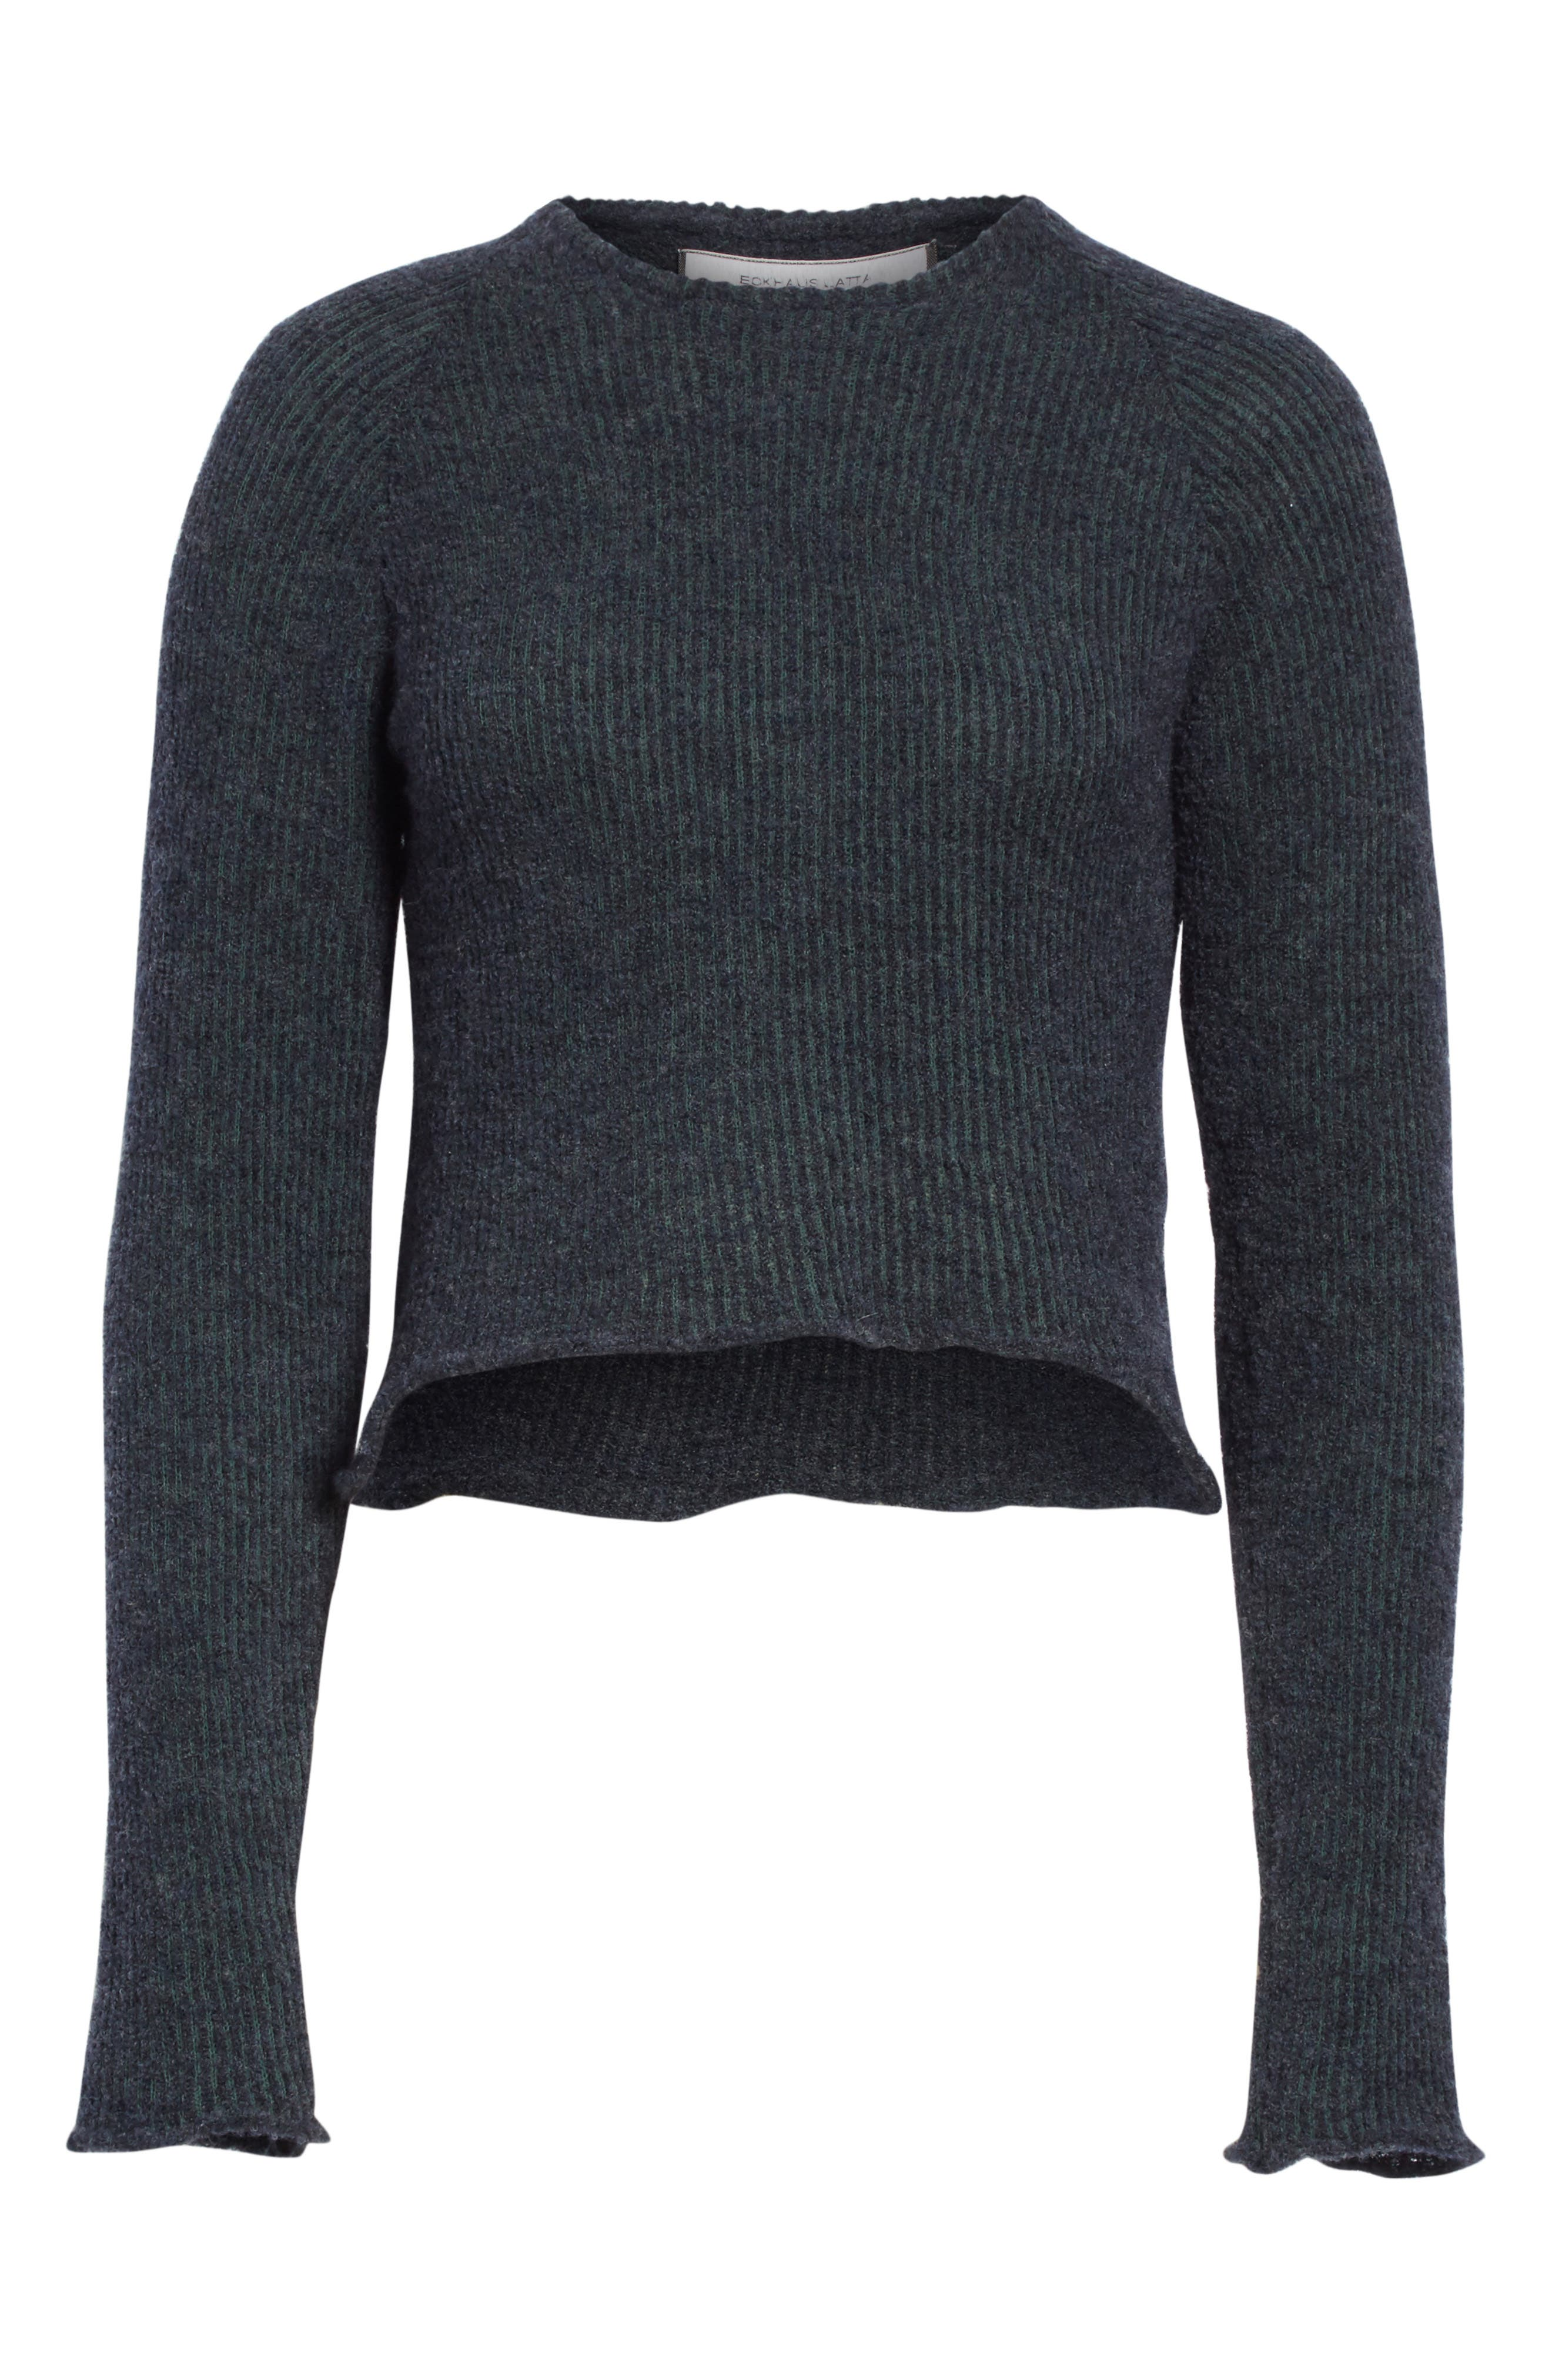 Raglan Pullover Sweater,                             Alternate thumbnail 6, color,                             NAVY